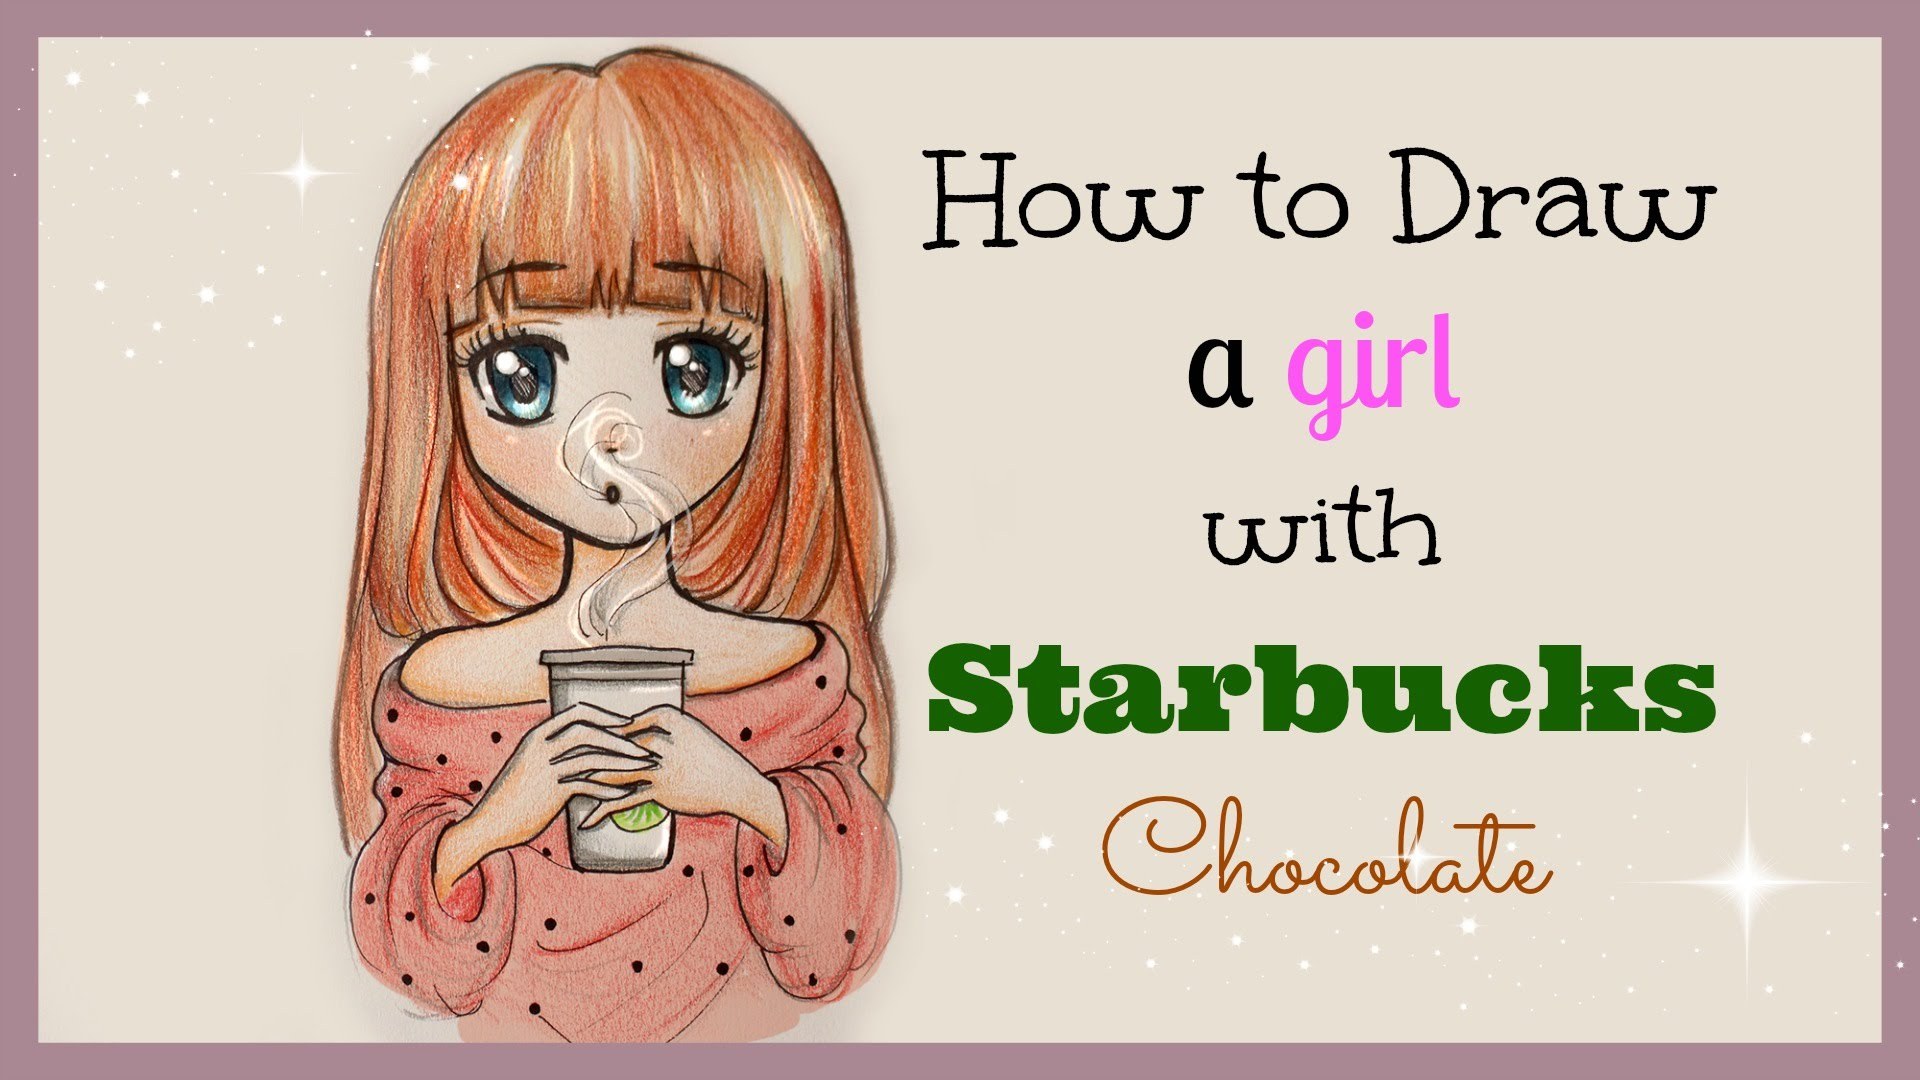 Drawn chocolate girly Drawing ❤ draw to to